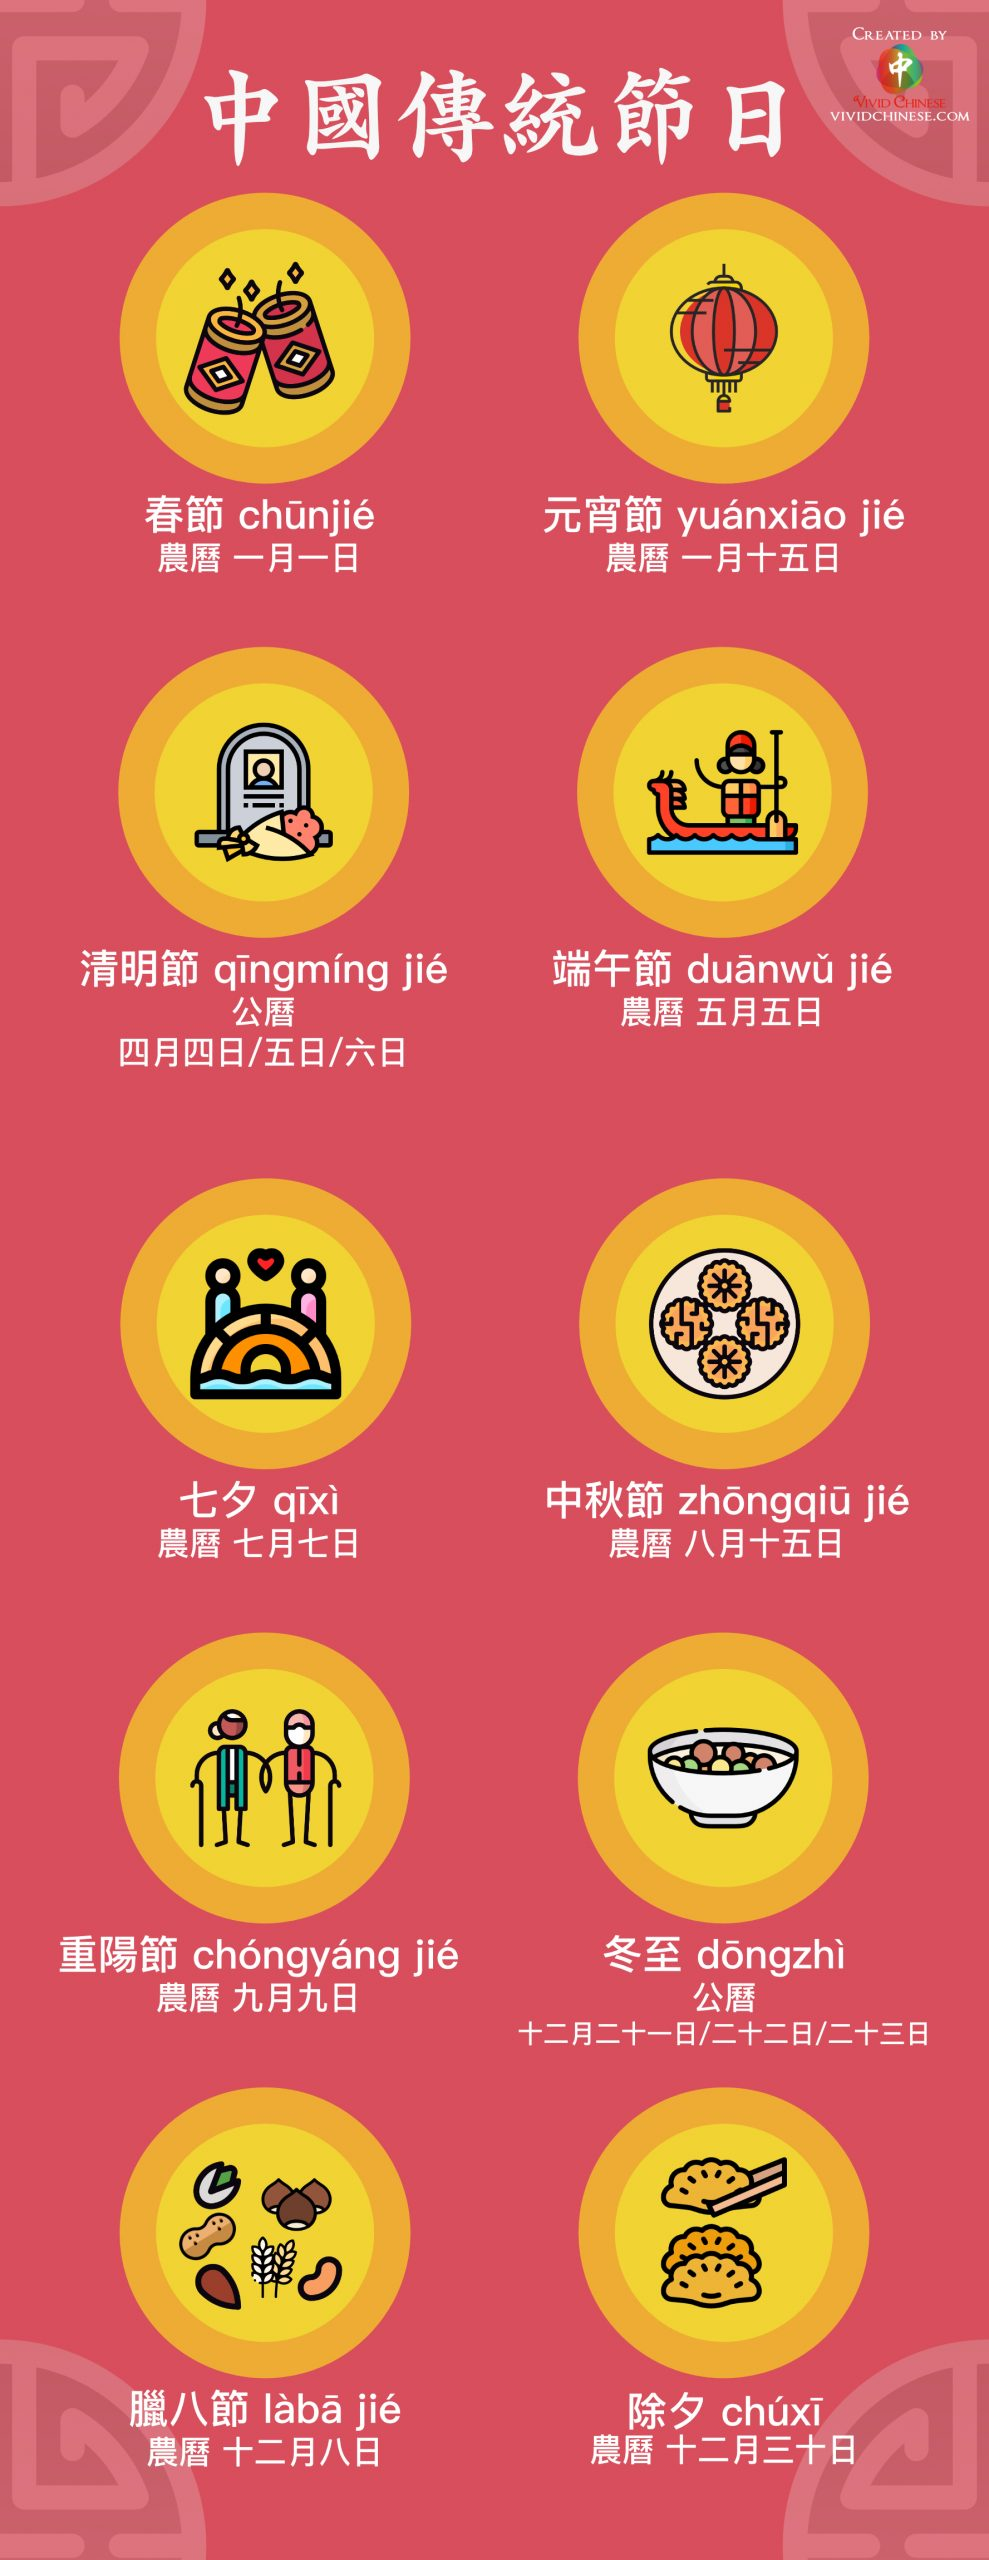 Traditional Chinese Holidays Infographic - Traditional Character Version